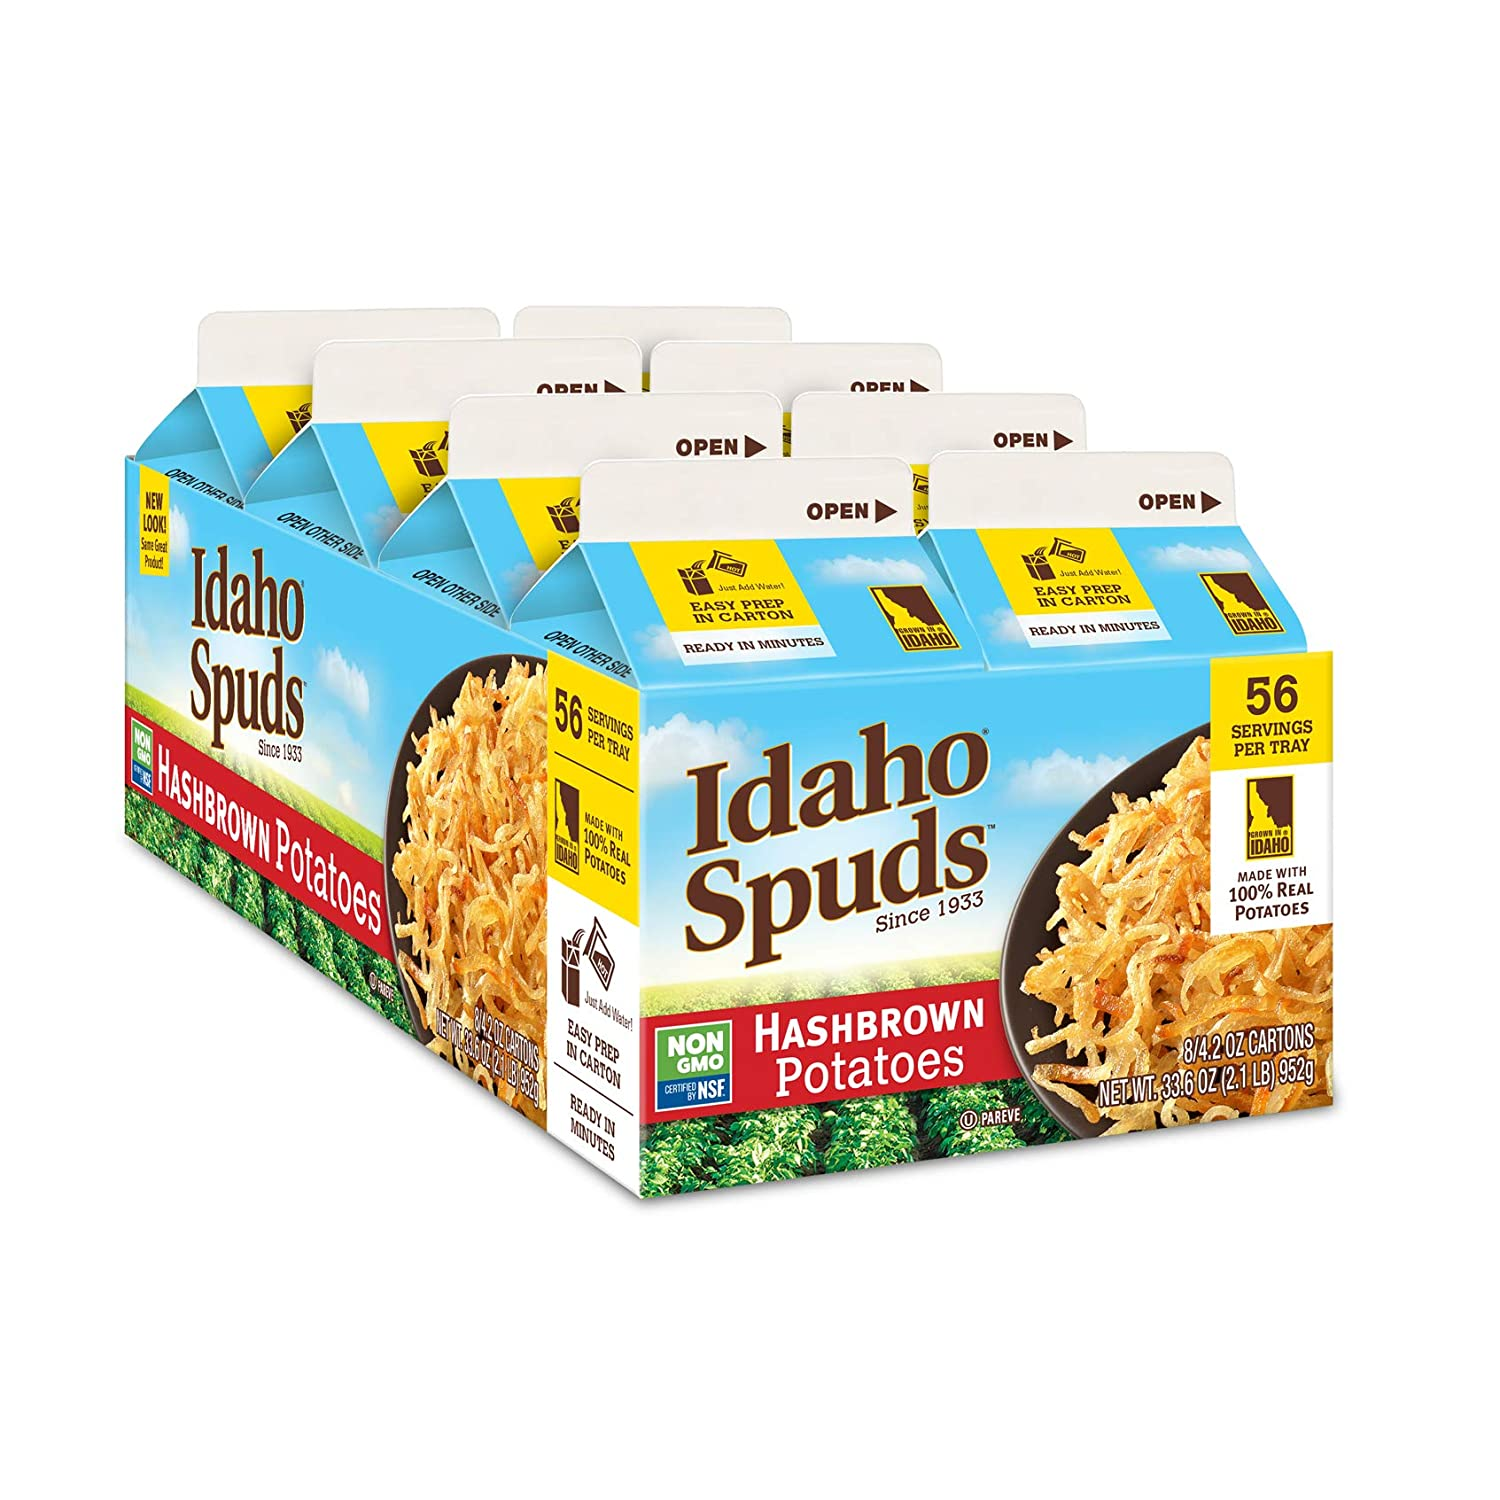 Idaho Spuds Premium Hashbrown Potatoes 4.2 oz, 8 Pack, Made from 100 Potatoes No Artificial Colors or Flavors NonGMO Certified Gluten Free Koshe, 33.6 Ounce